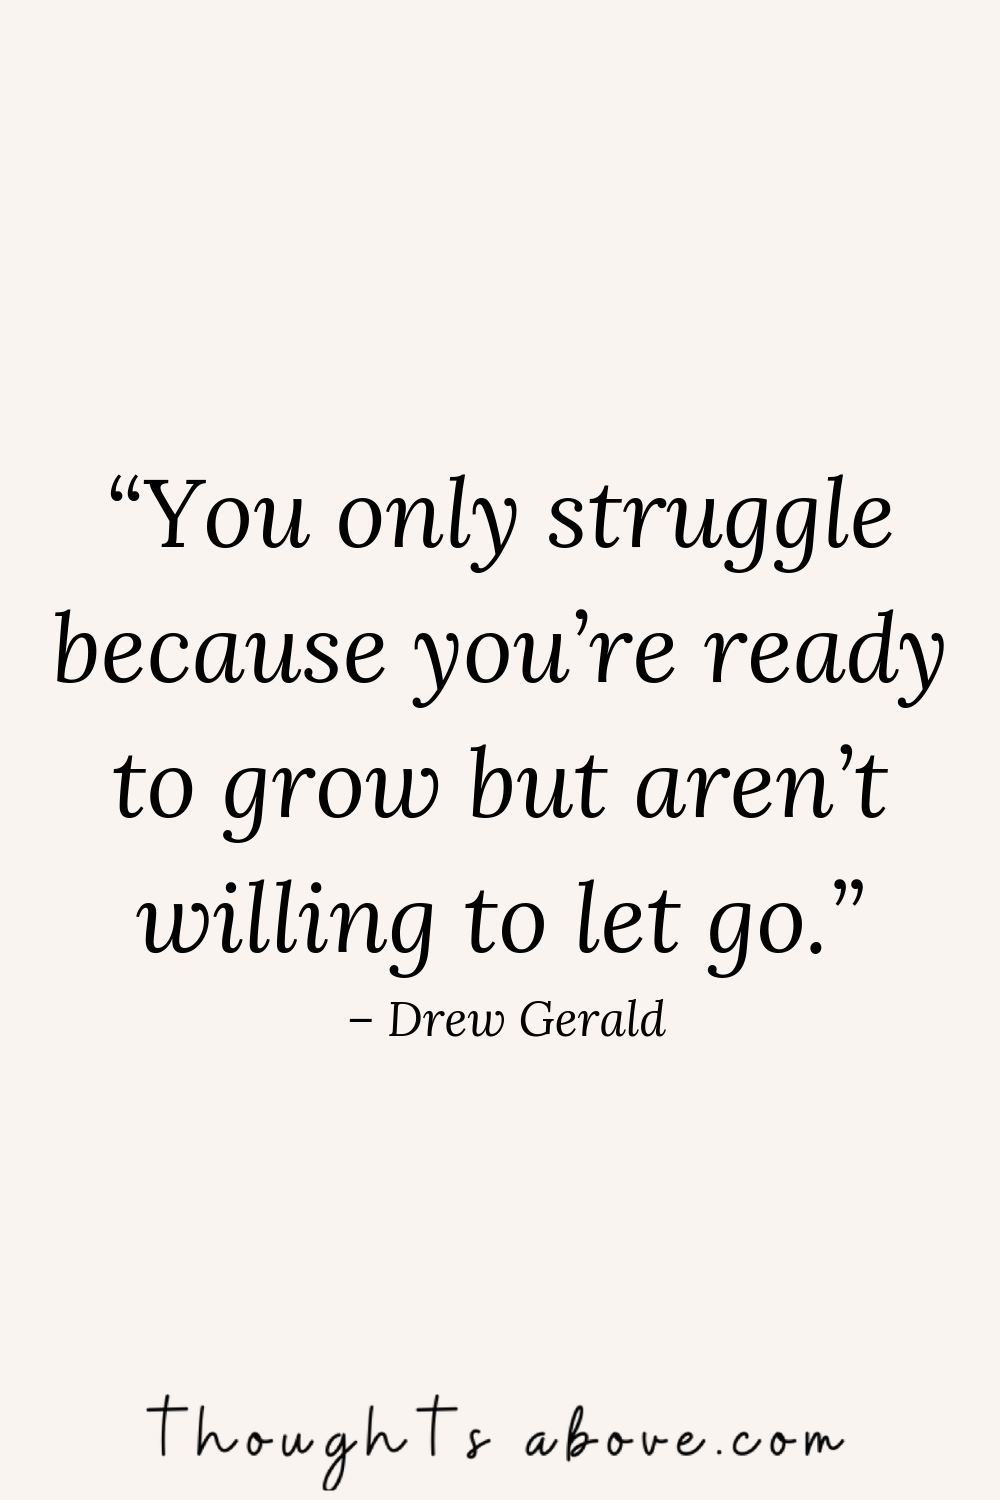 15 Quotes On Letting Go and Moving On That Will Inspire You To Do So